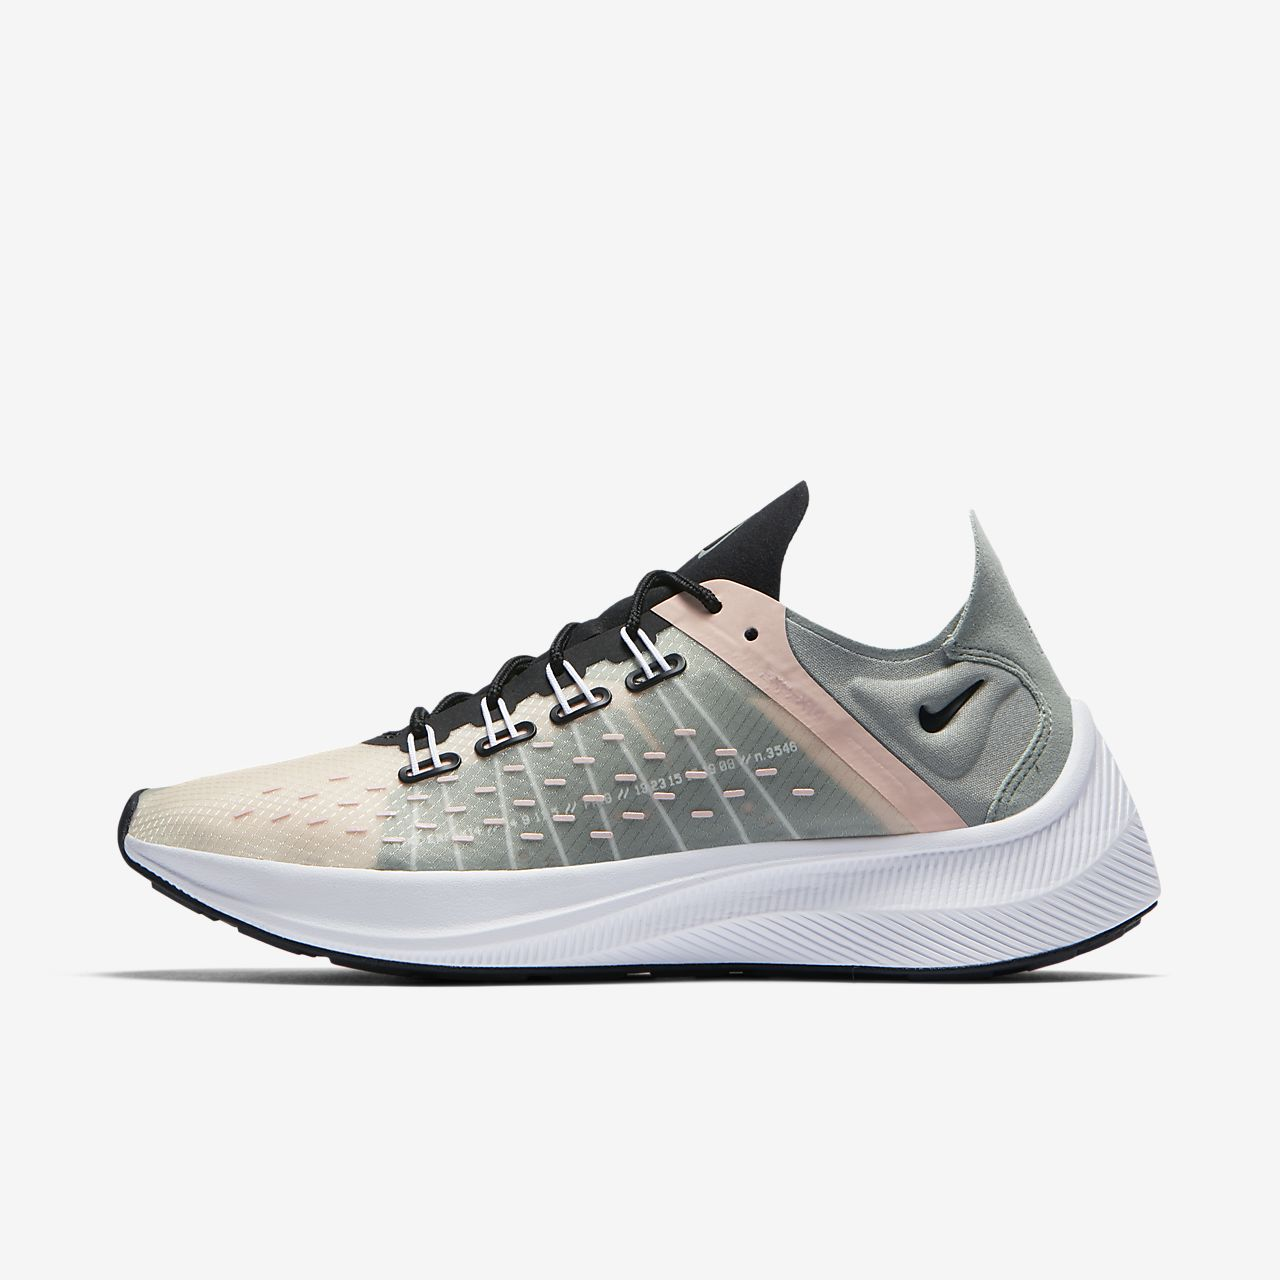 Nike EXP-X14 Women's Shoe Low Cost Lowest Price Sale Online qh3llBB